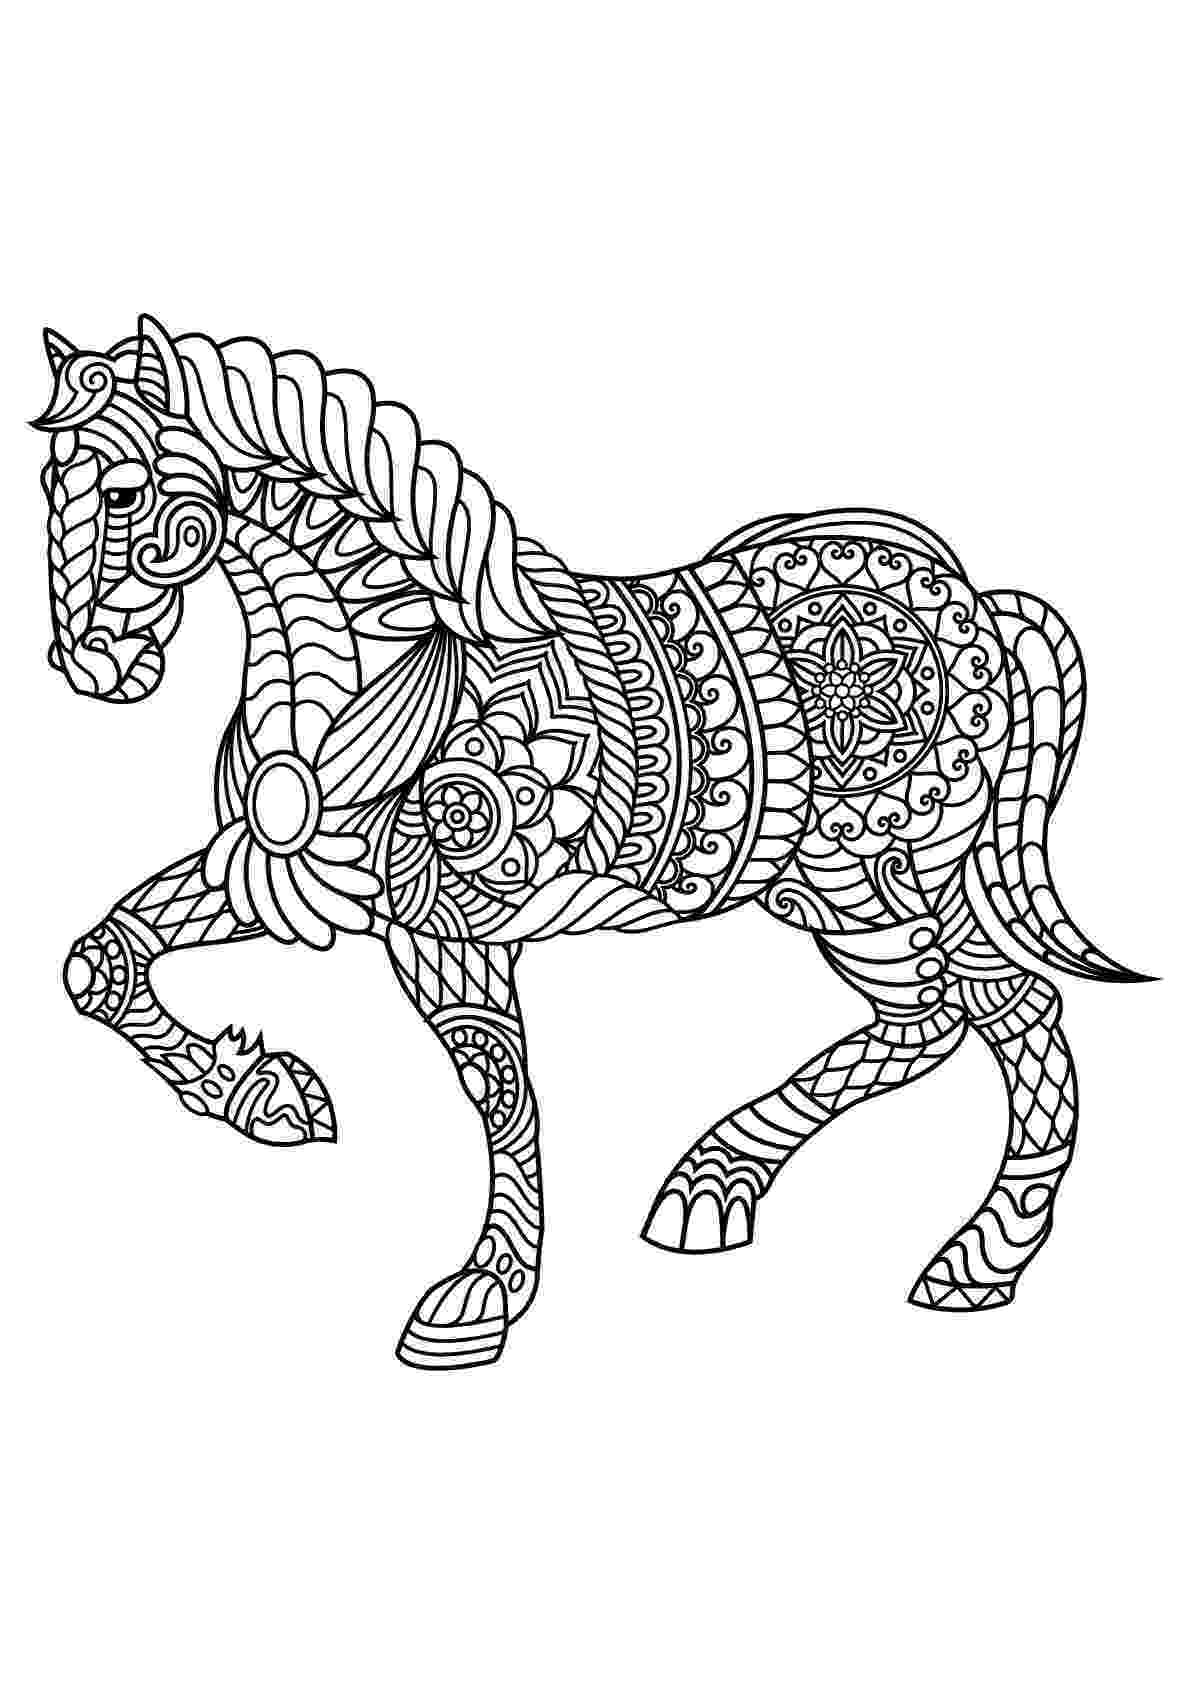 printable horse coloring pages for adults free horse coloring pages selah works cindy39s adult adults coloring pages printable horse for